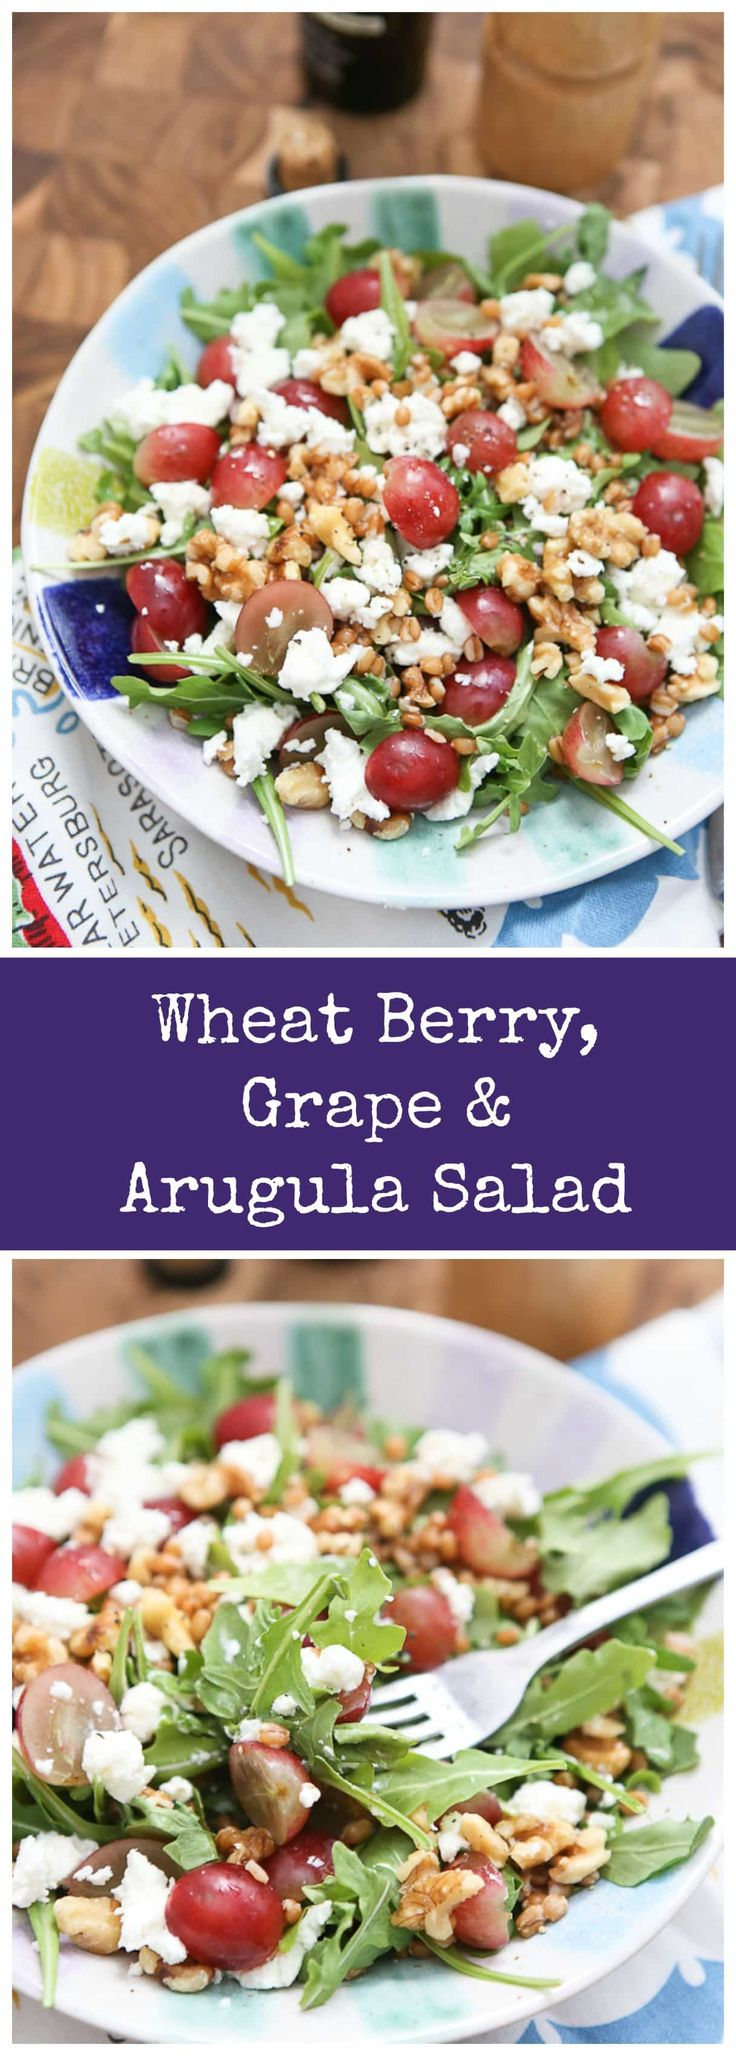 Packed with taste and nutrition, this Wheat Berry and Arugula Salad with Grapes and Nuts will quickly become your new favorite salad! via @aggieskitchen